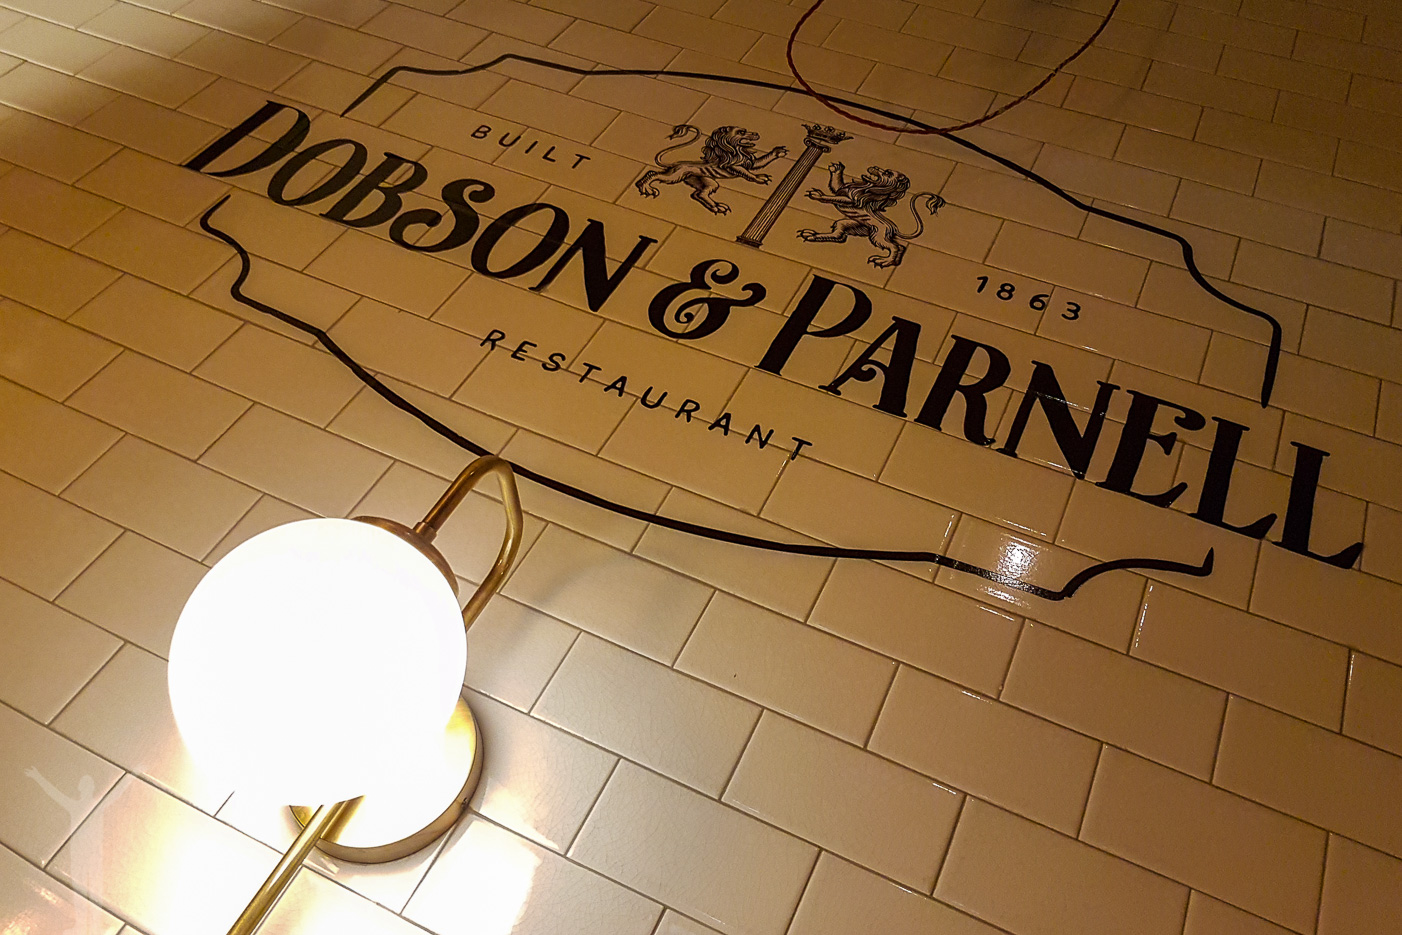 Dobson and Parnell, restaurang i Newcastle